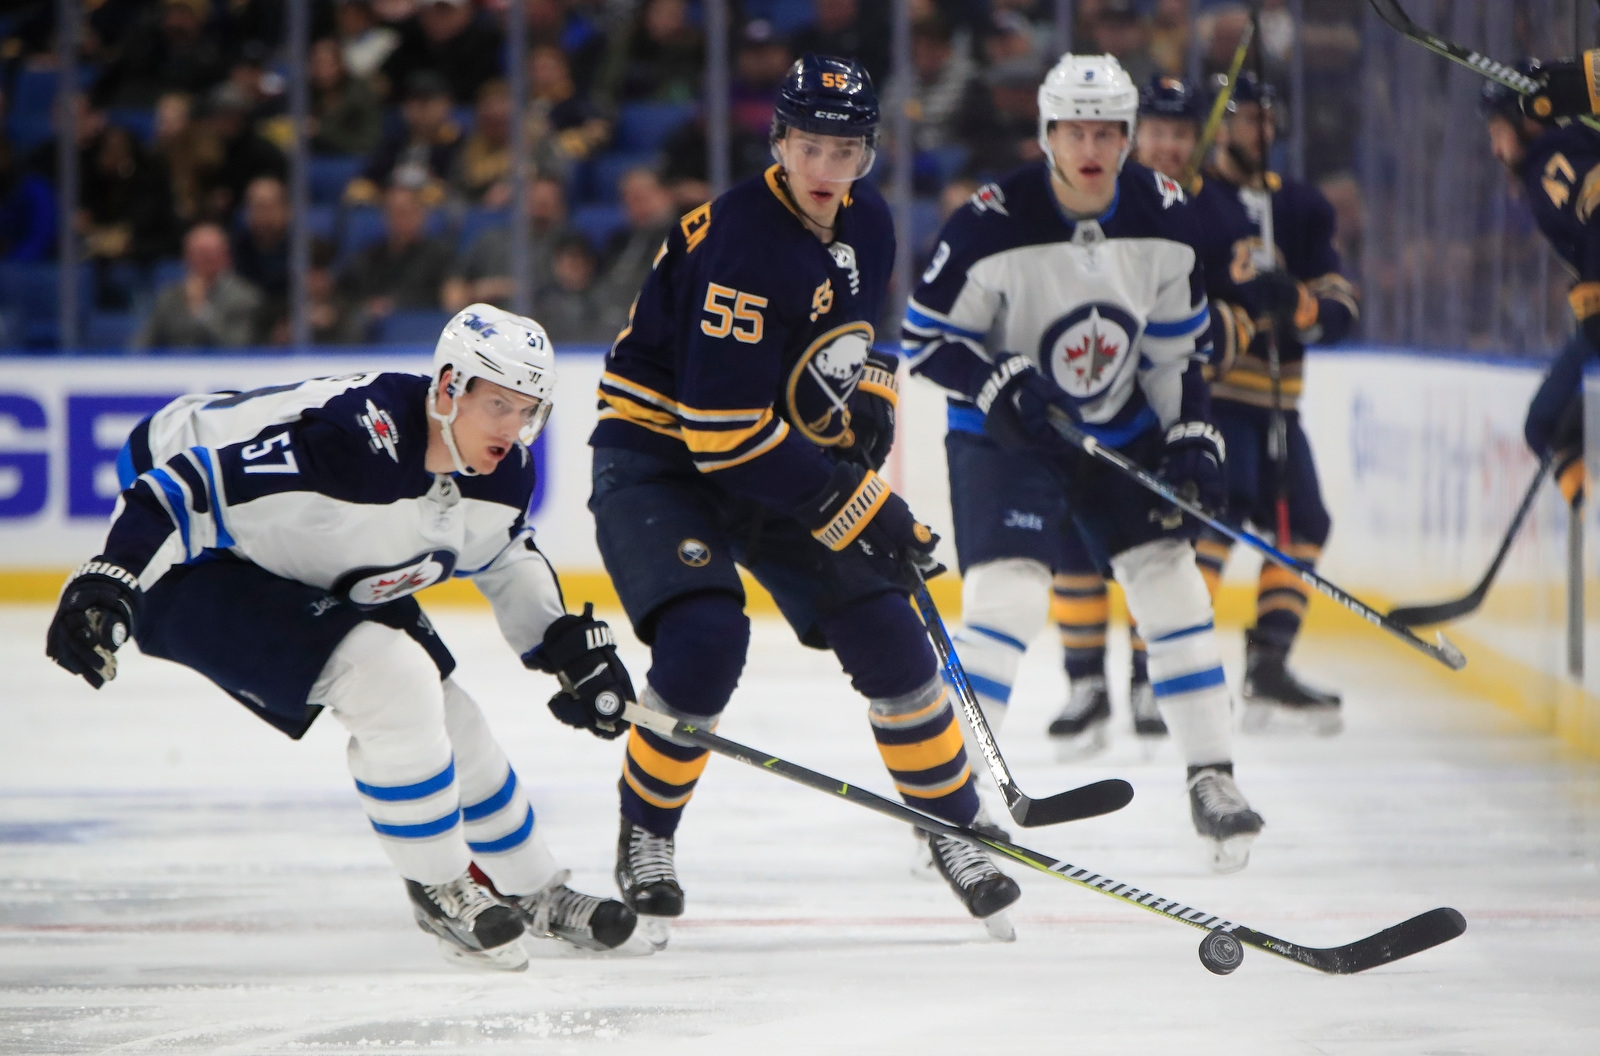 Buffalo Sabres' Rasmus Ristolainen tips the puck past Winnipeg Jets' Tyler Myers during first period action at the KeyBank Center on Tuesday, Jan. 9, 2018.